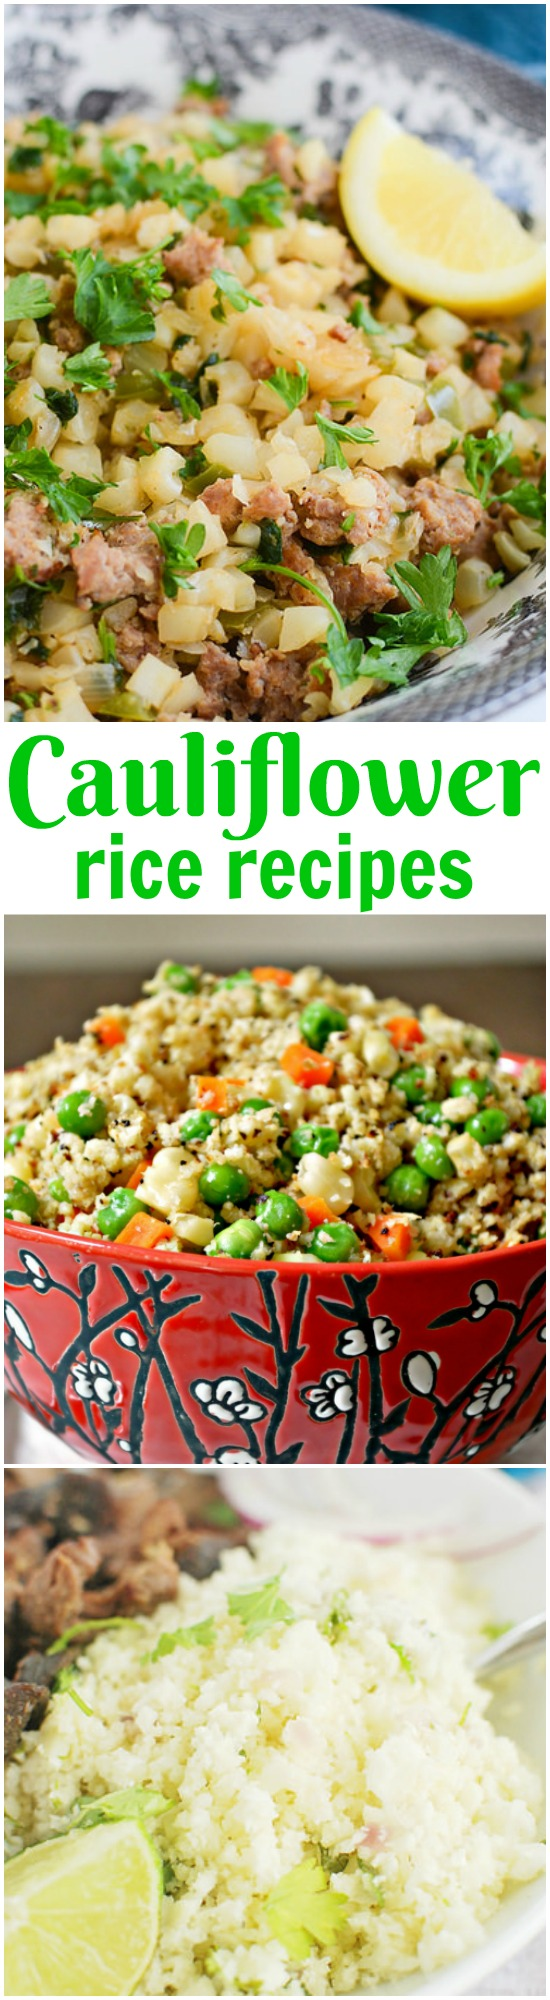 Not only is cauliflower rice good for you, it tastes good too! I put together a collection of some of the Tastiest Cauliflower Rice Recipes.